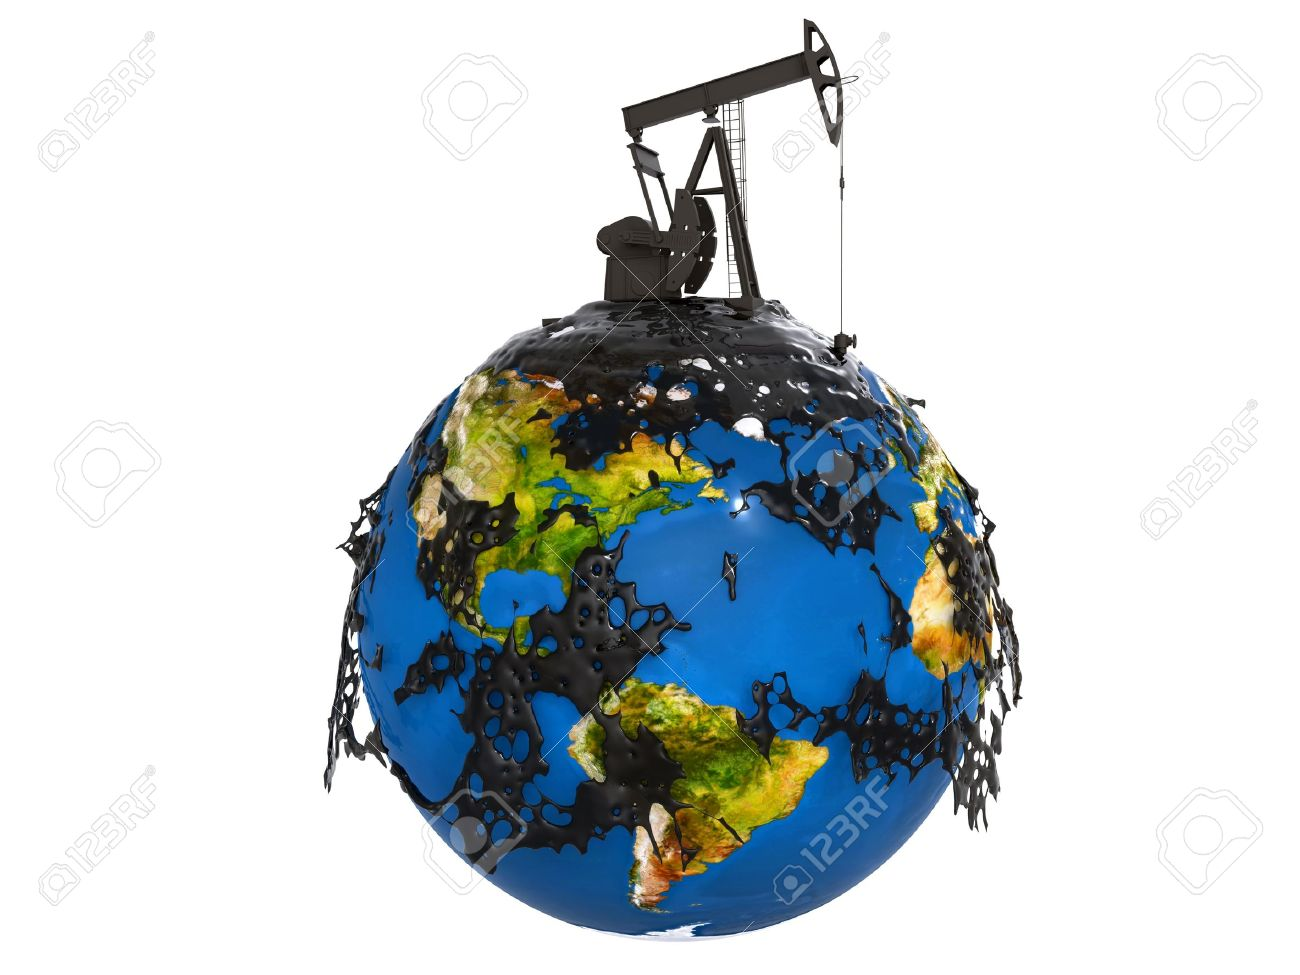 Pump Jack And Oil Spill Over Planet Earth Isolated On White 1300x975